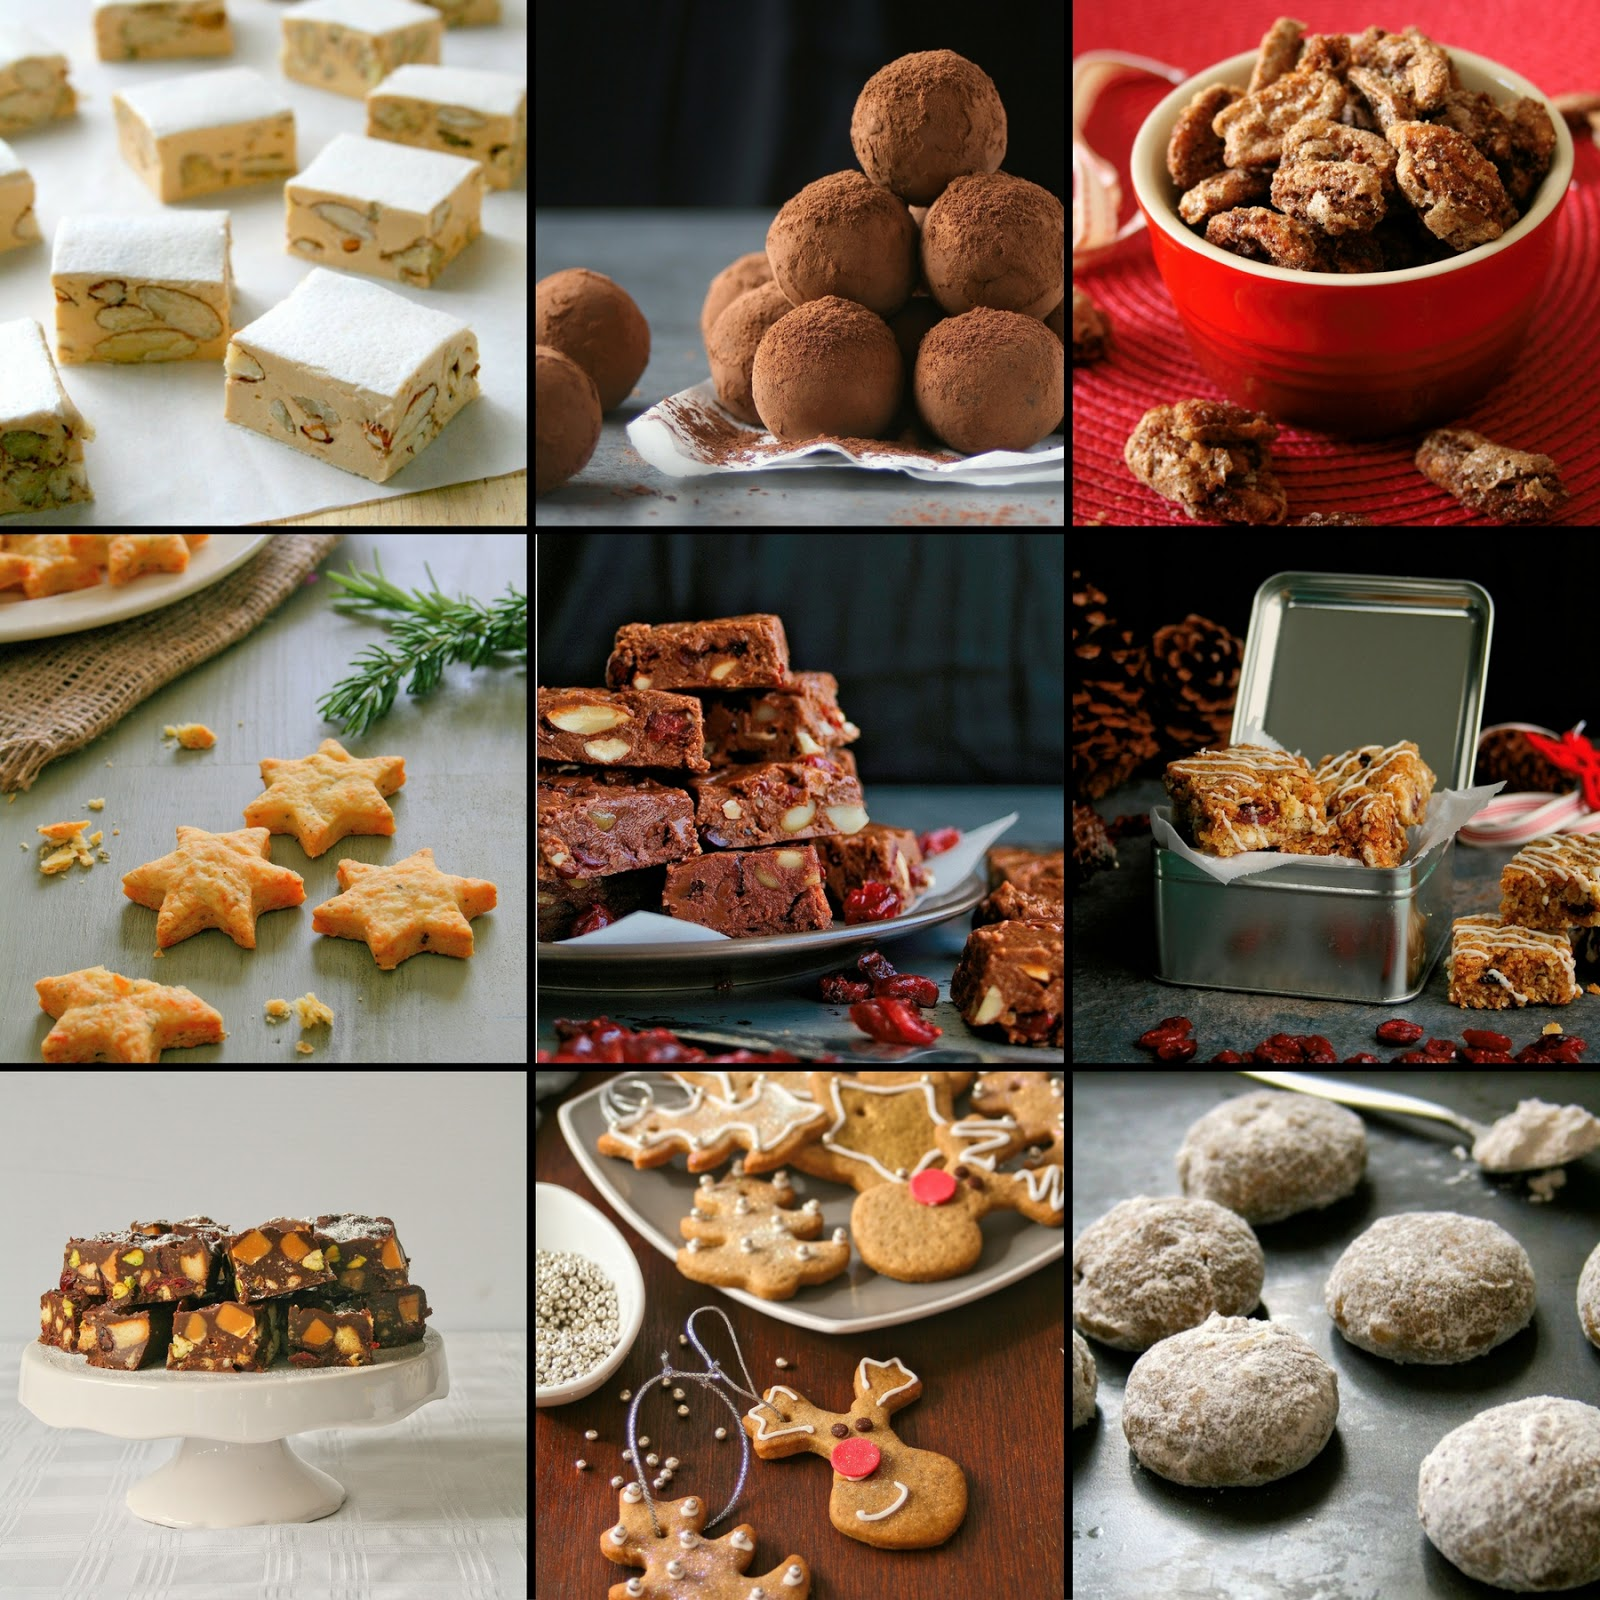 Cupcakes & Couscous: Ten Fabulous Edible Christmas Gift Ideas